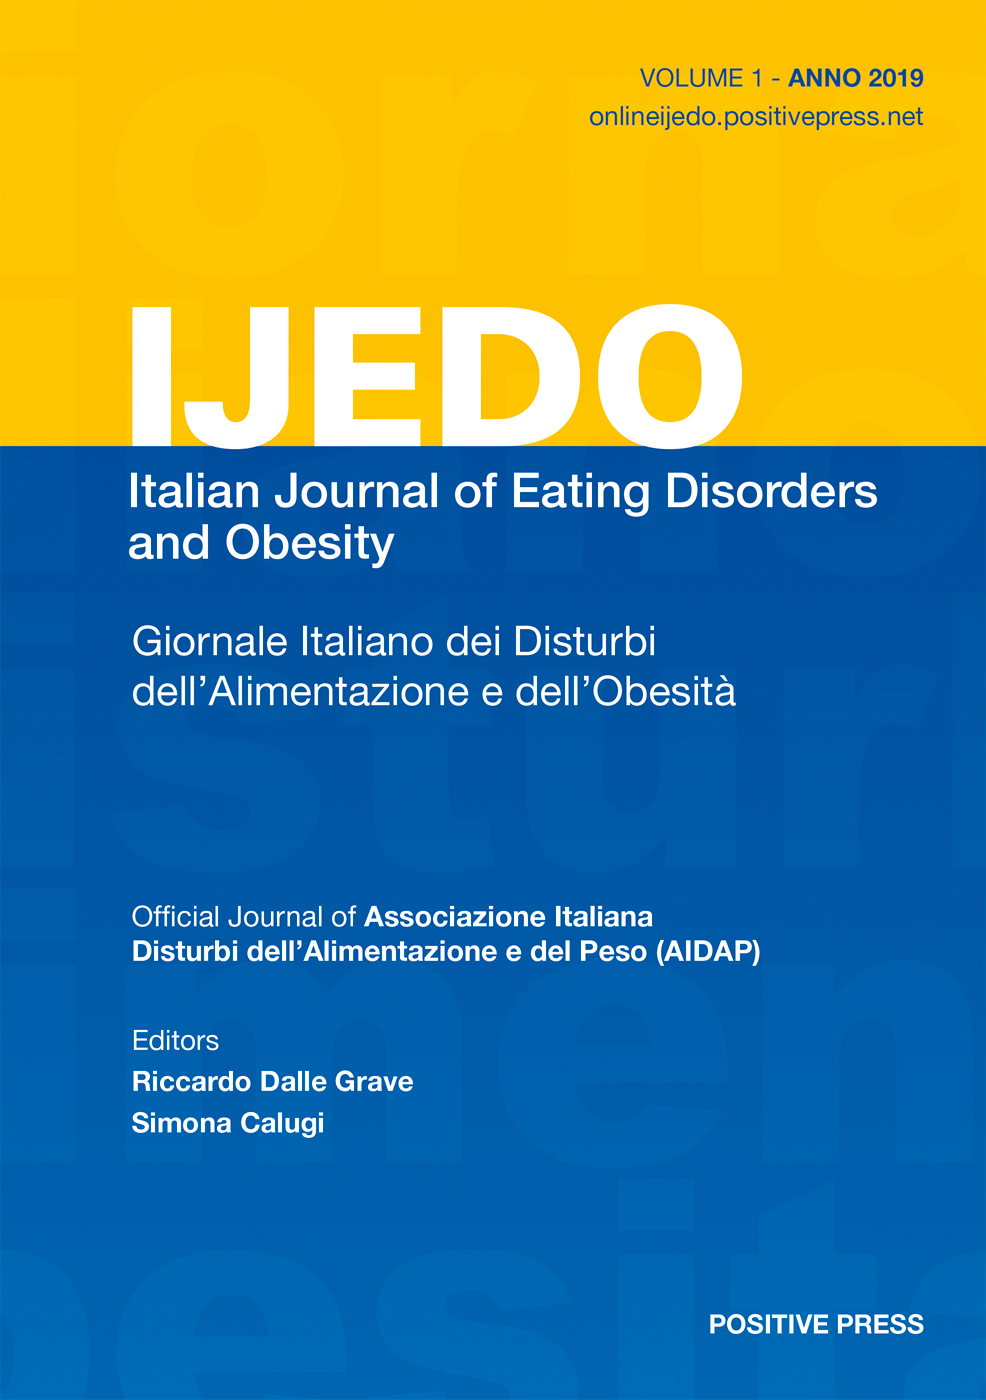 Giornale Italiano dei Disturbi dell'Alimentazione e dell'Obesita / Italian Journal of Eating Disorders and Obesity